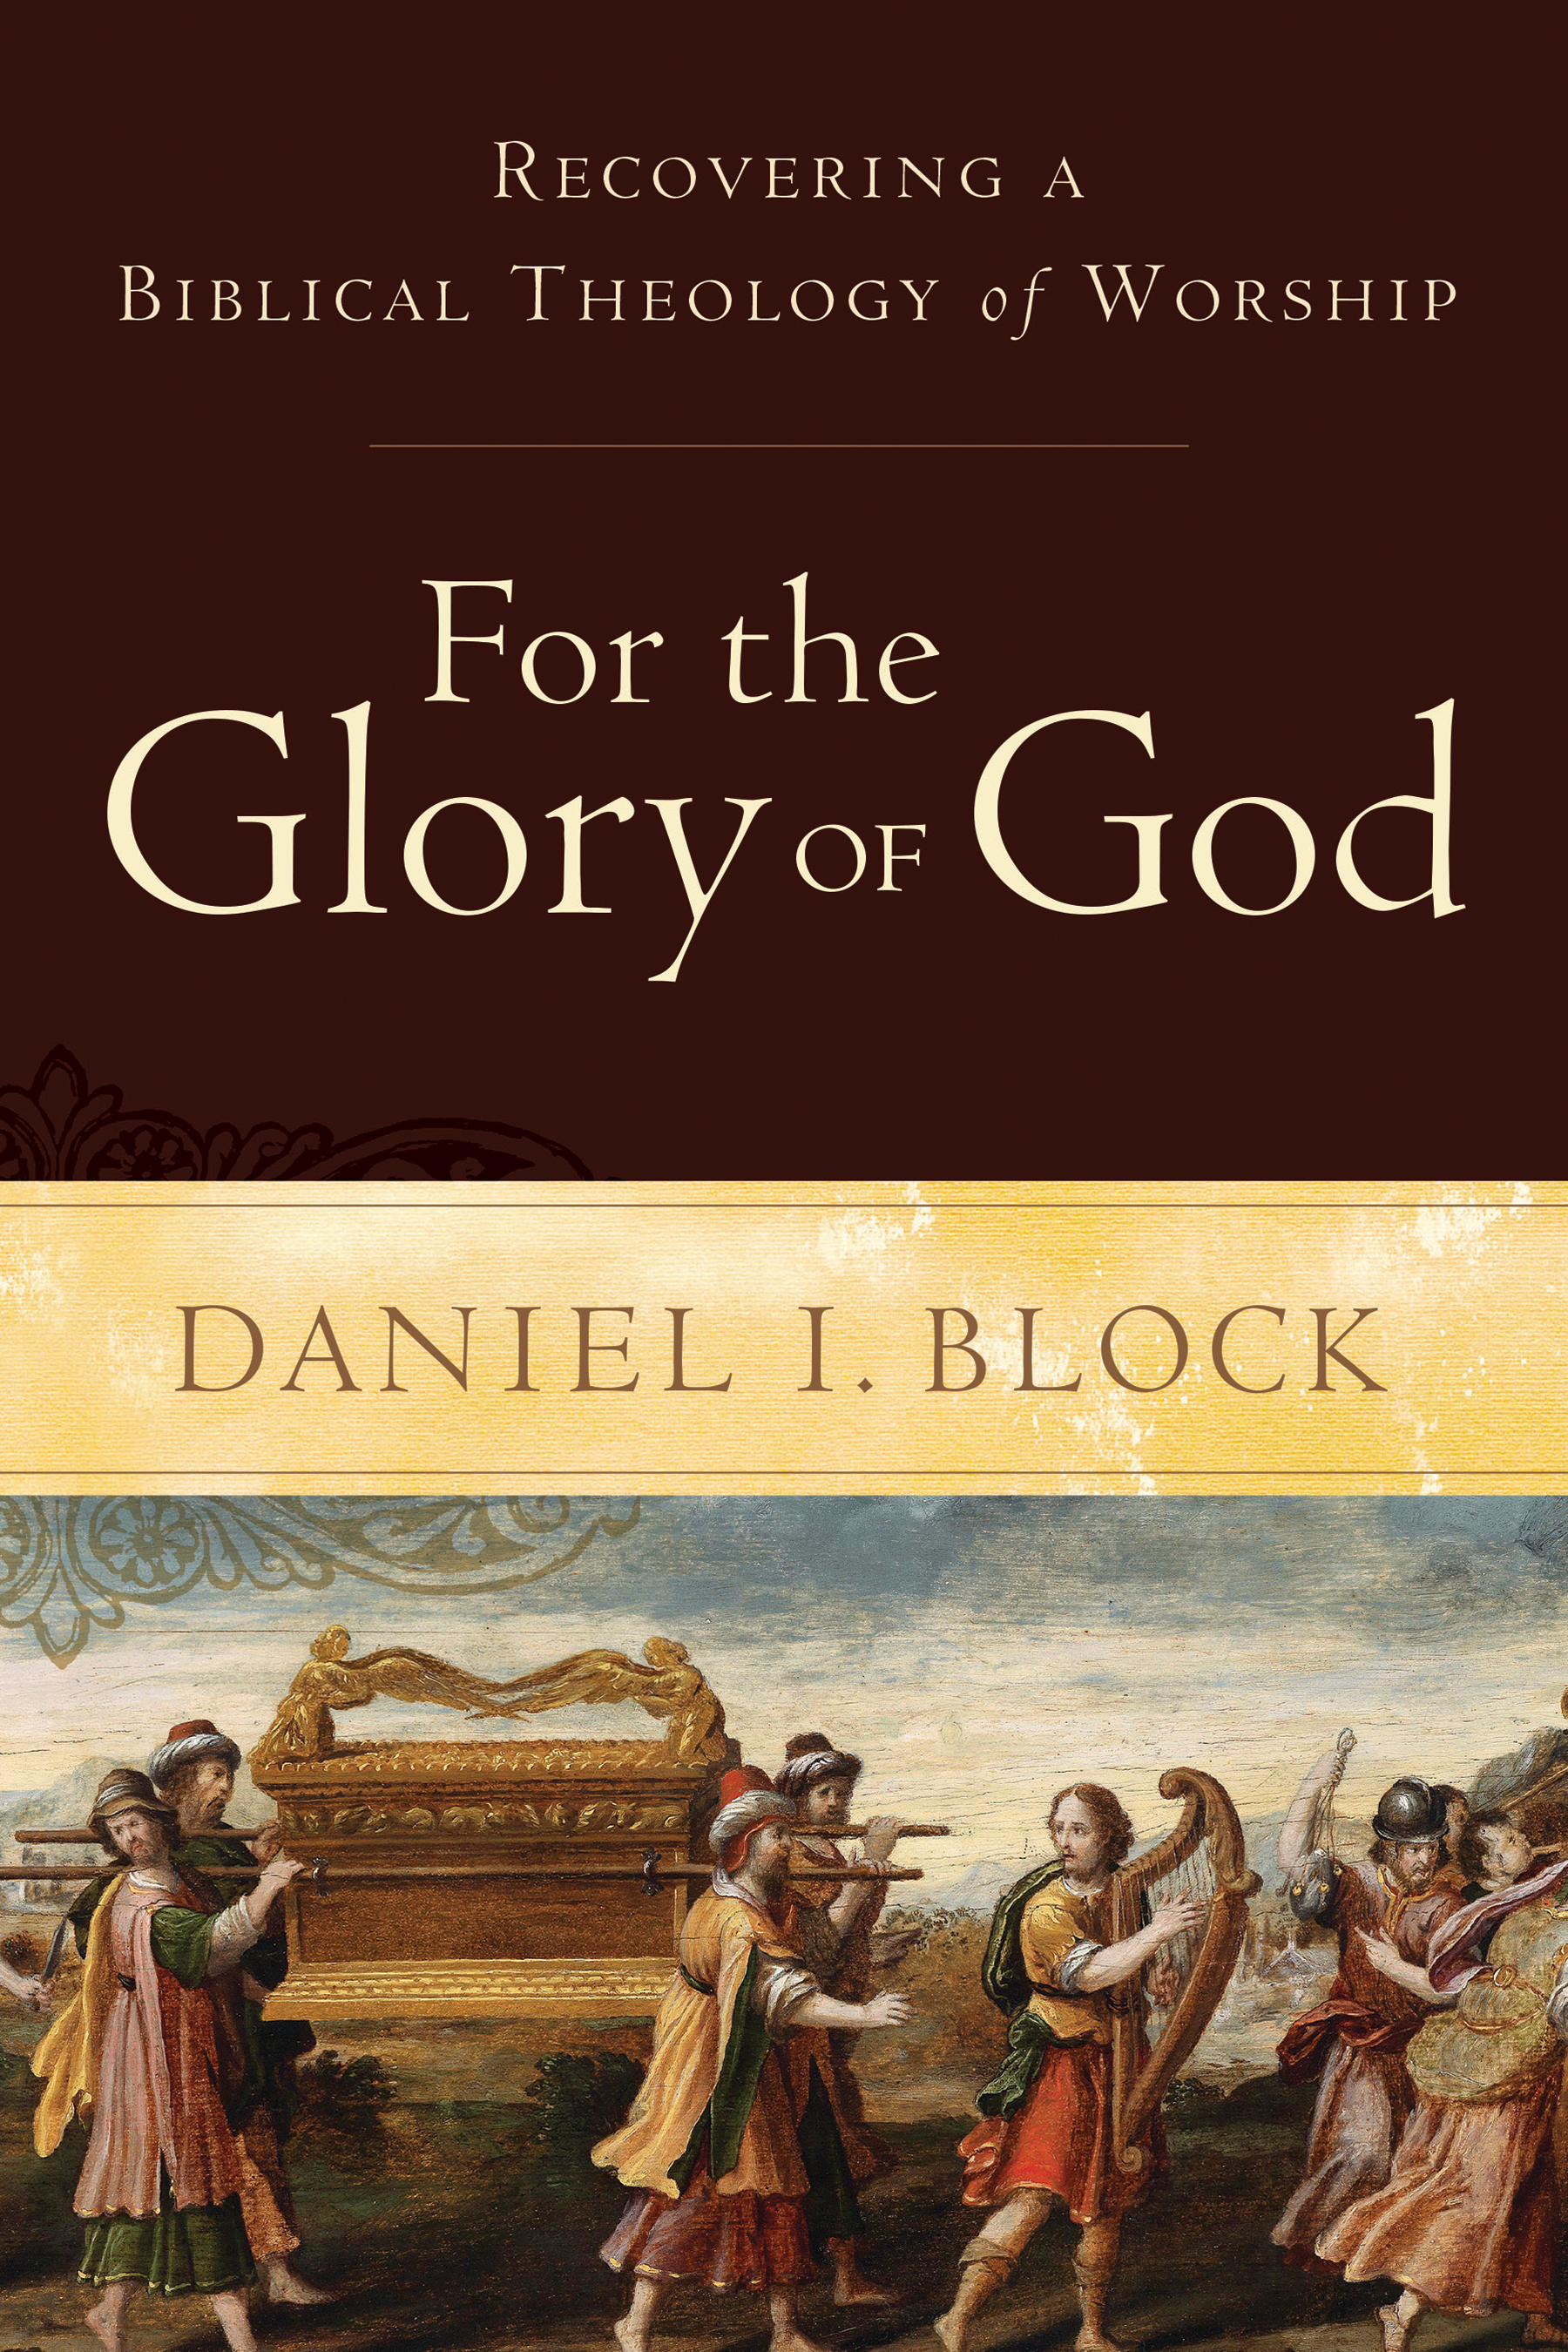 Recovering a Biblical Theology of Worship